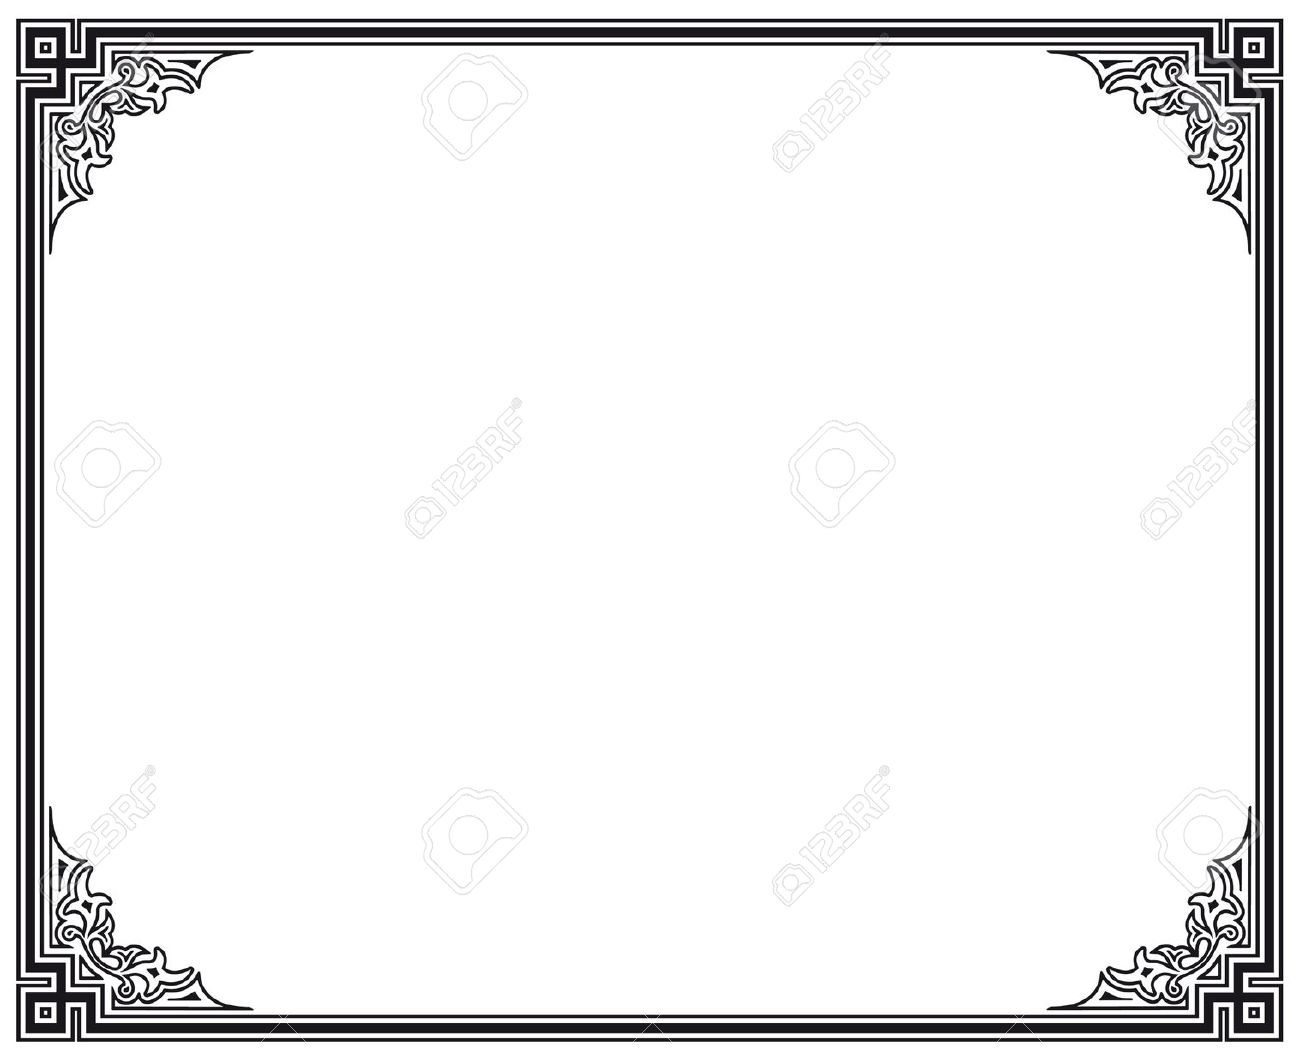 222083825350712357 additionally Art Deco likewise Borders And Frames moreover Hair Inspo Etching Patterns further Art Nouveau. on roaring 20s clip art frame